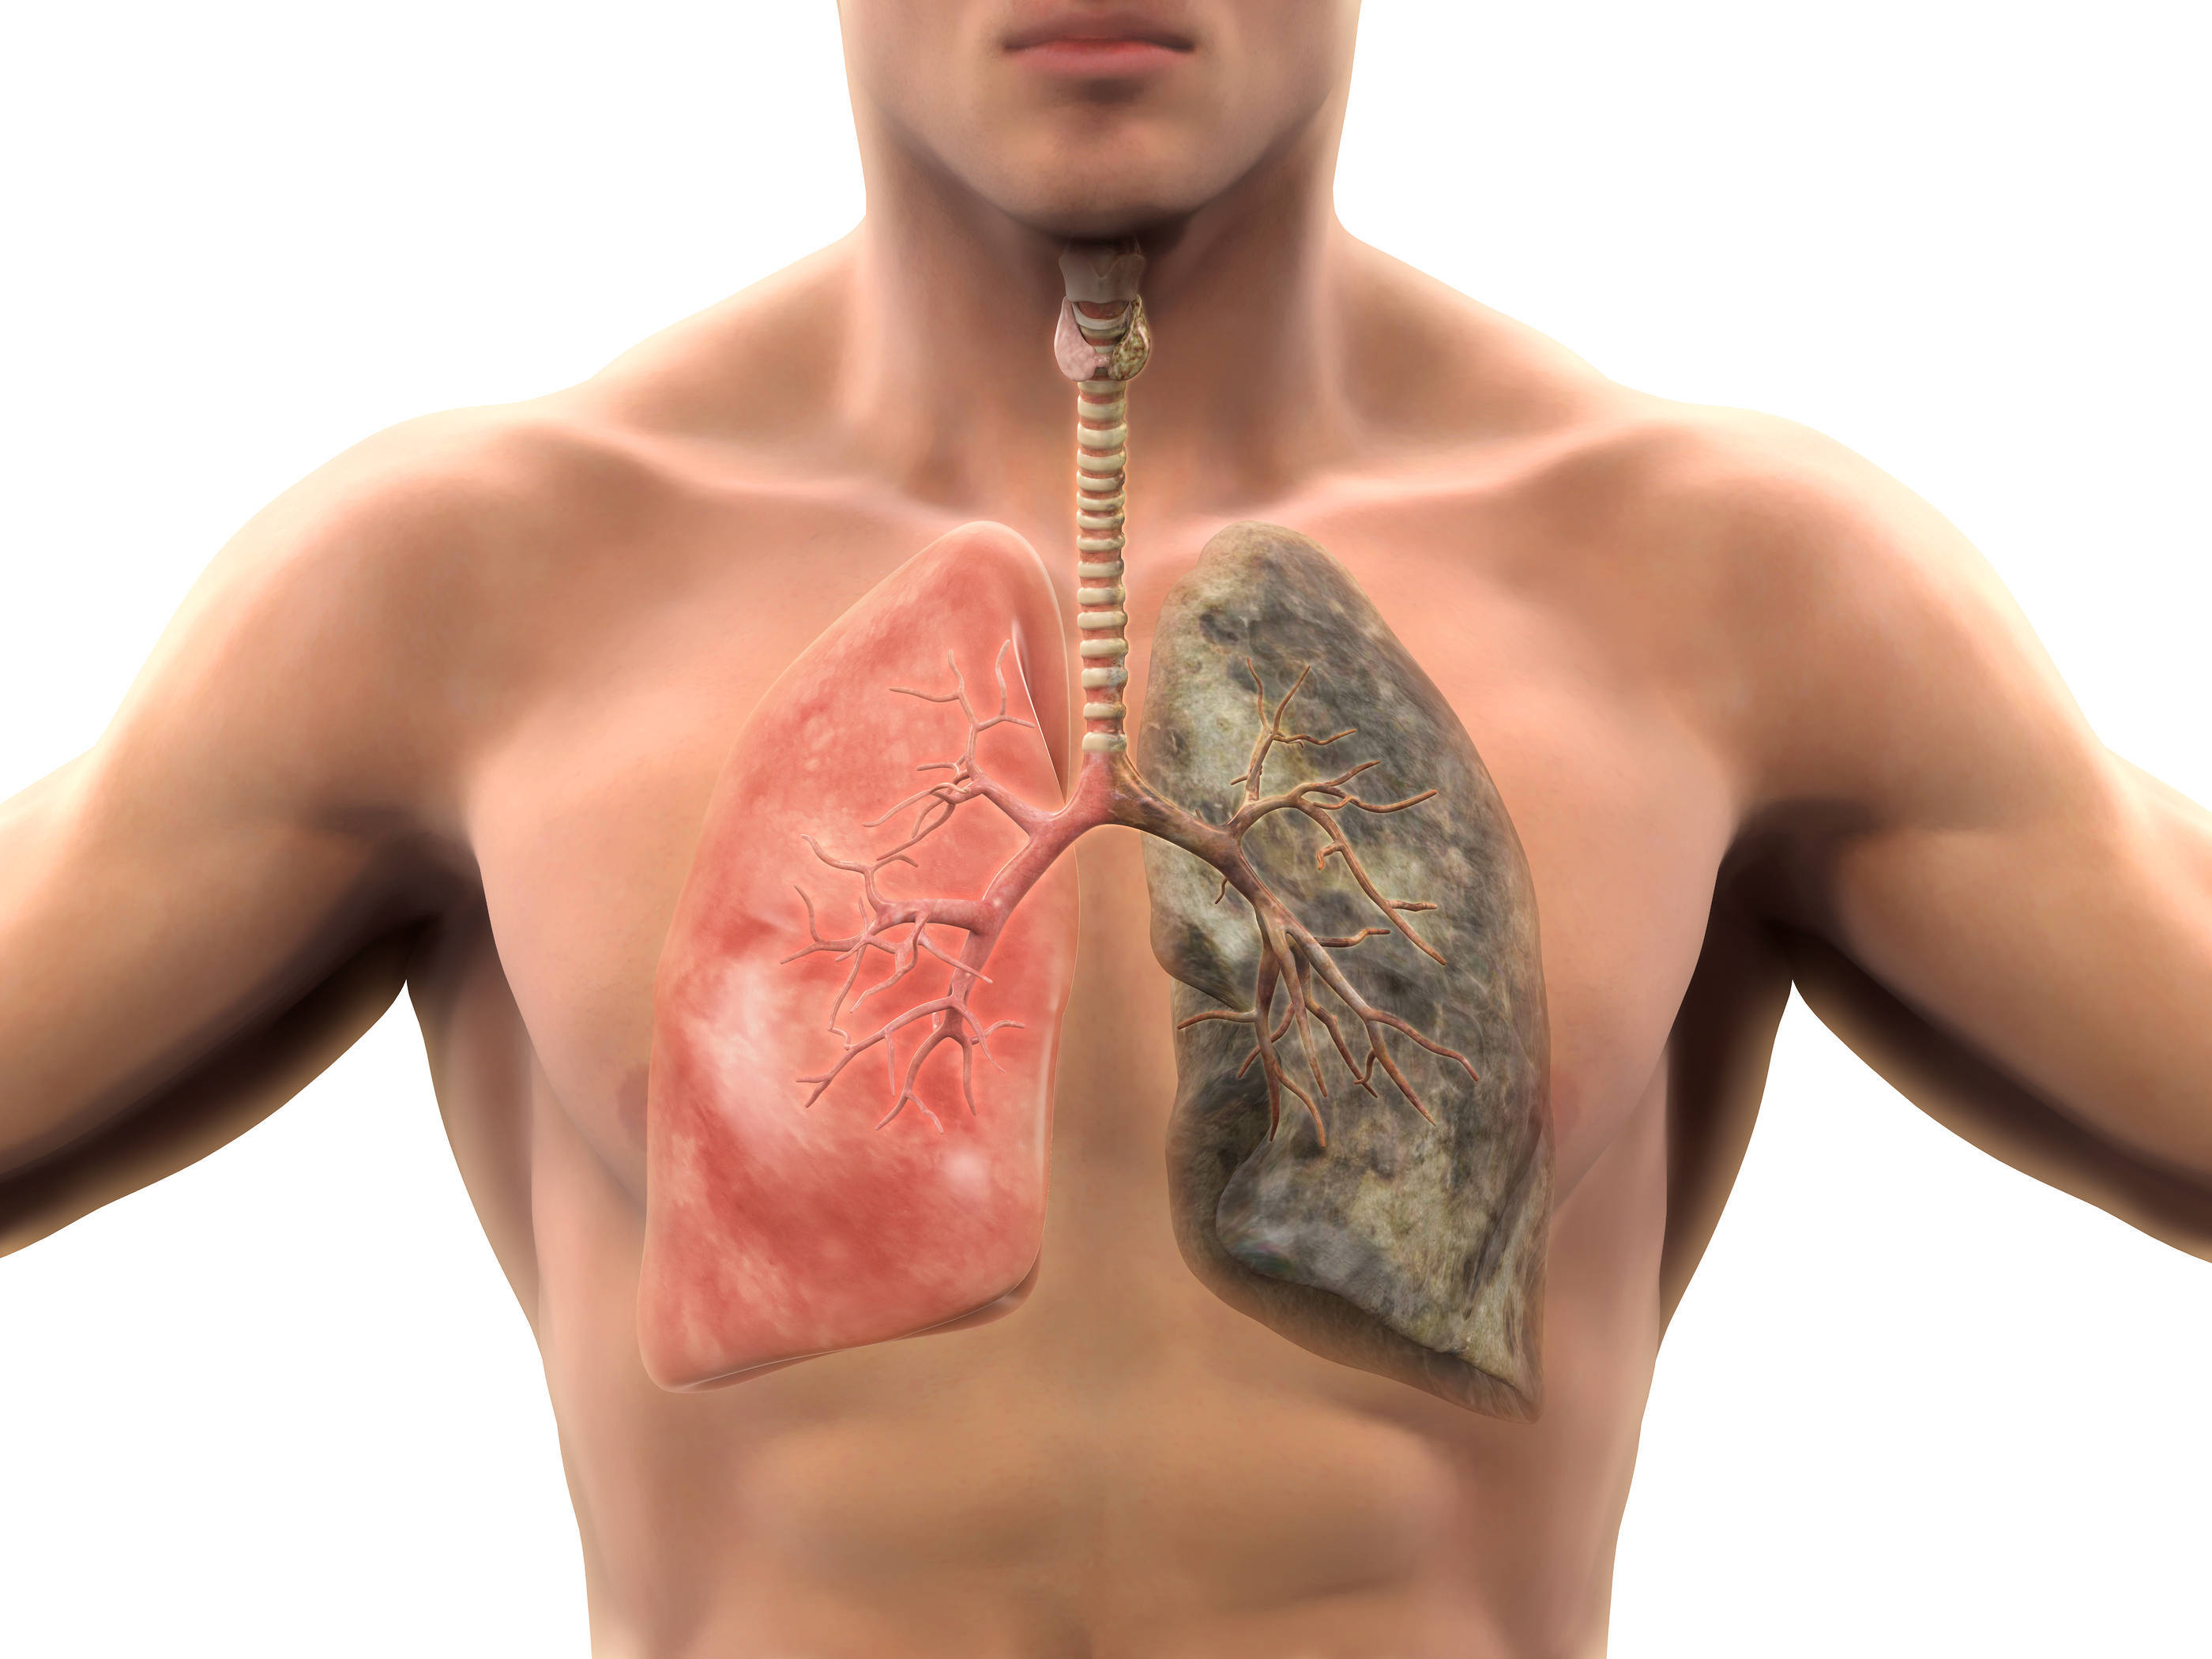 bigstock-Healthy-Lung-and-Smokers-Lung-65743462